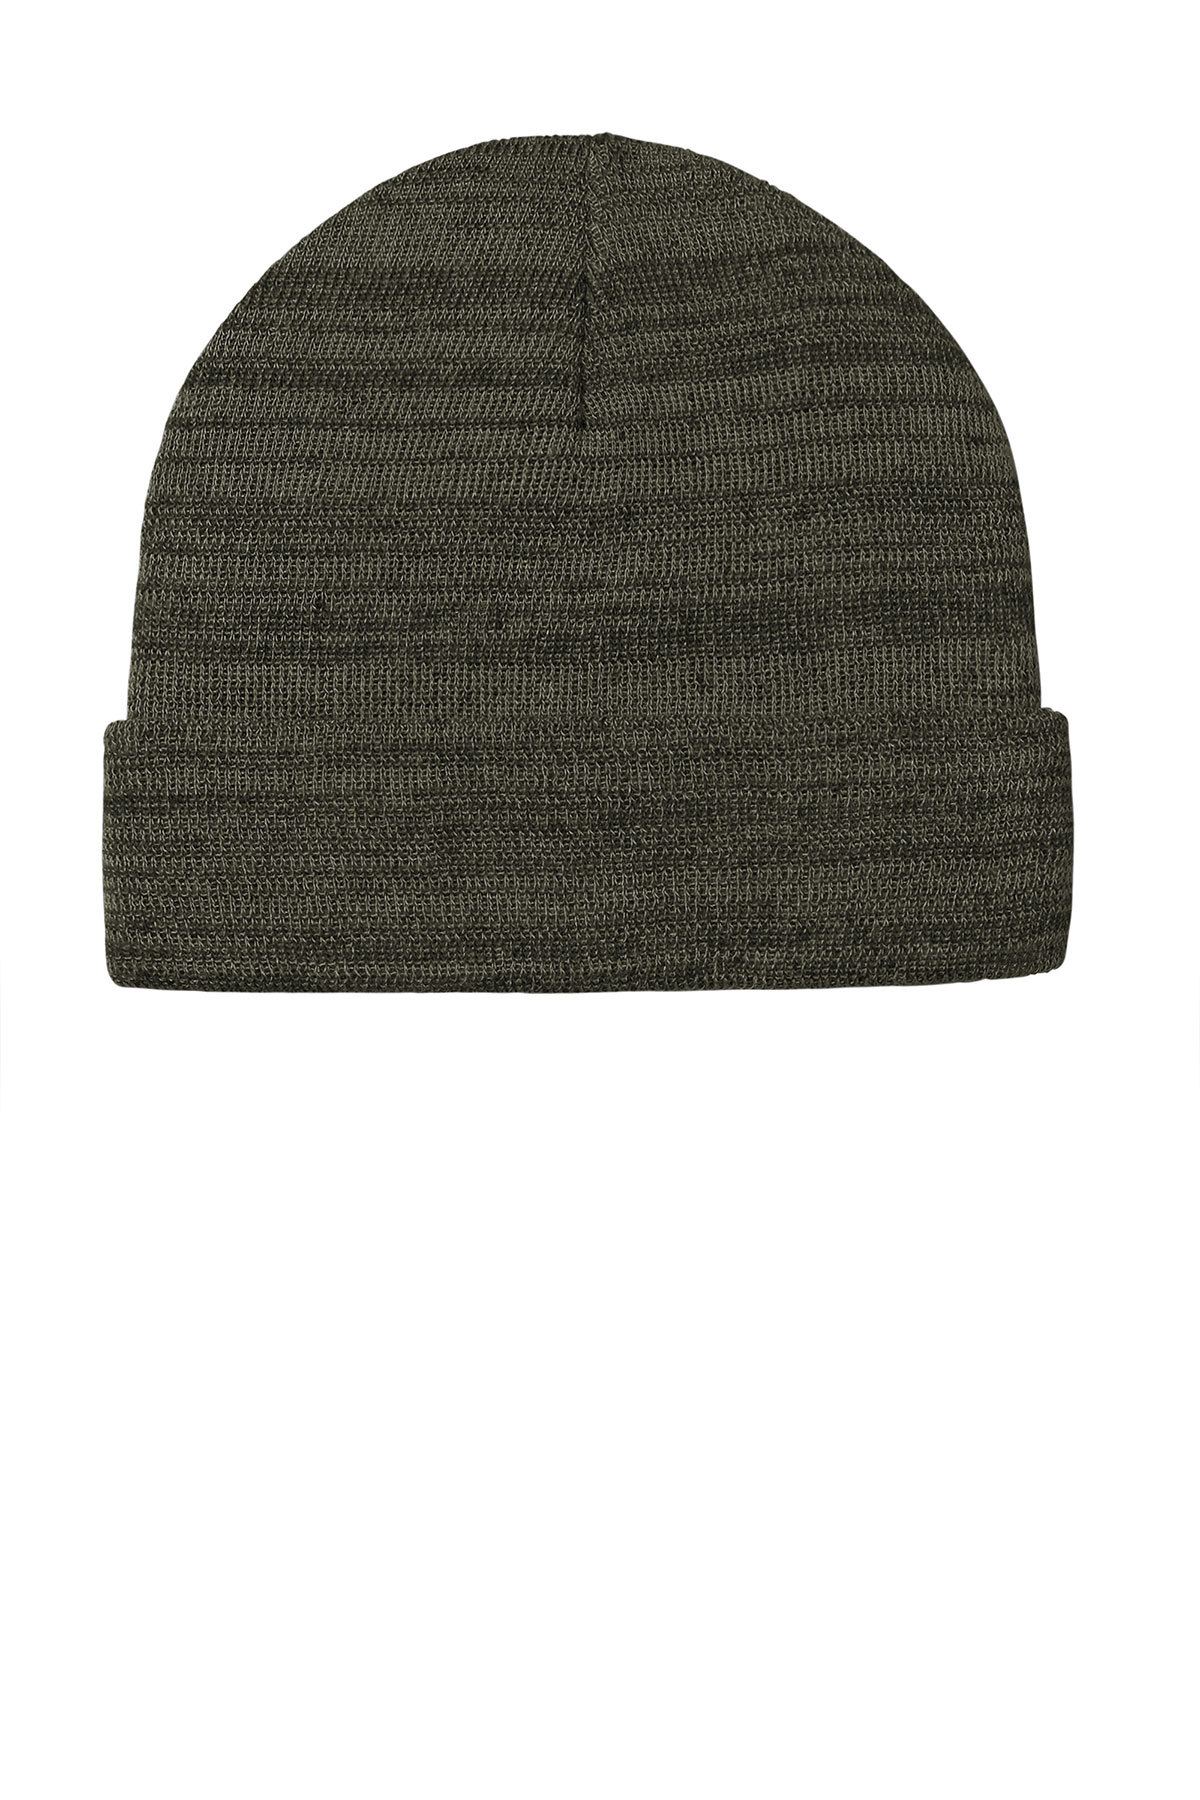 Port Authority C939 - Knit Cuff Beanie